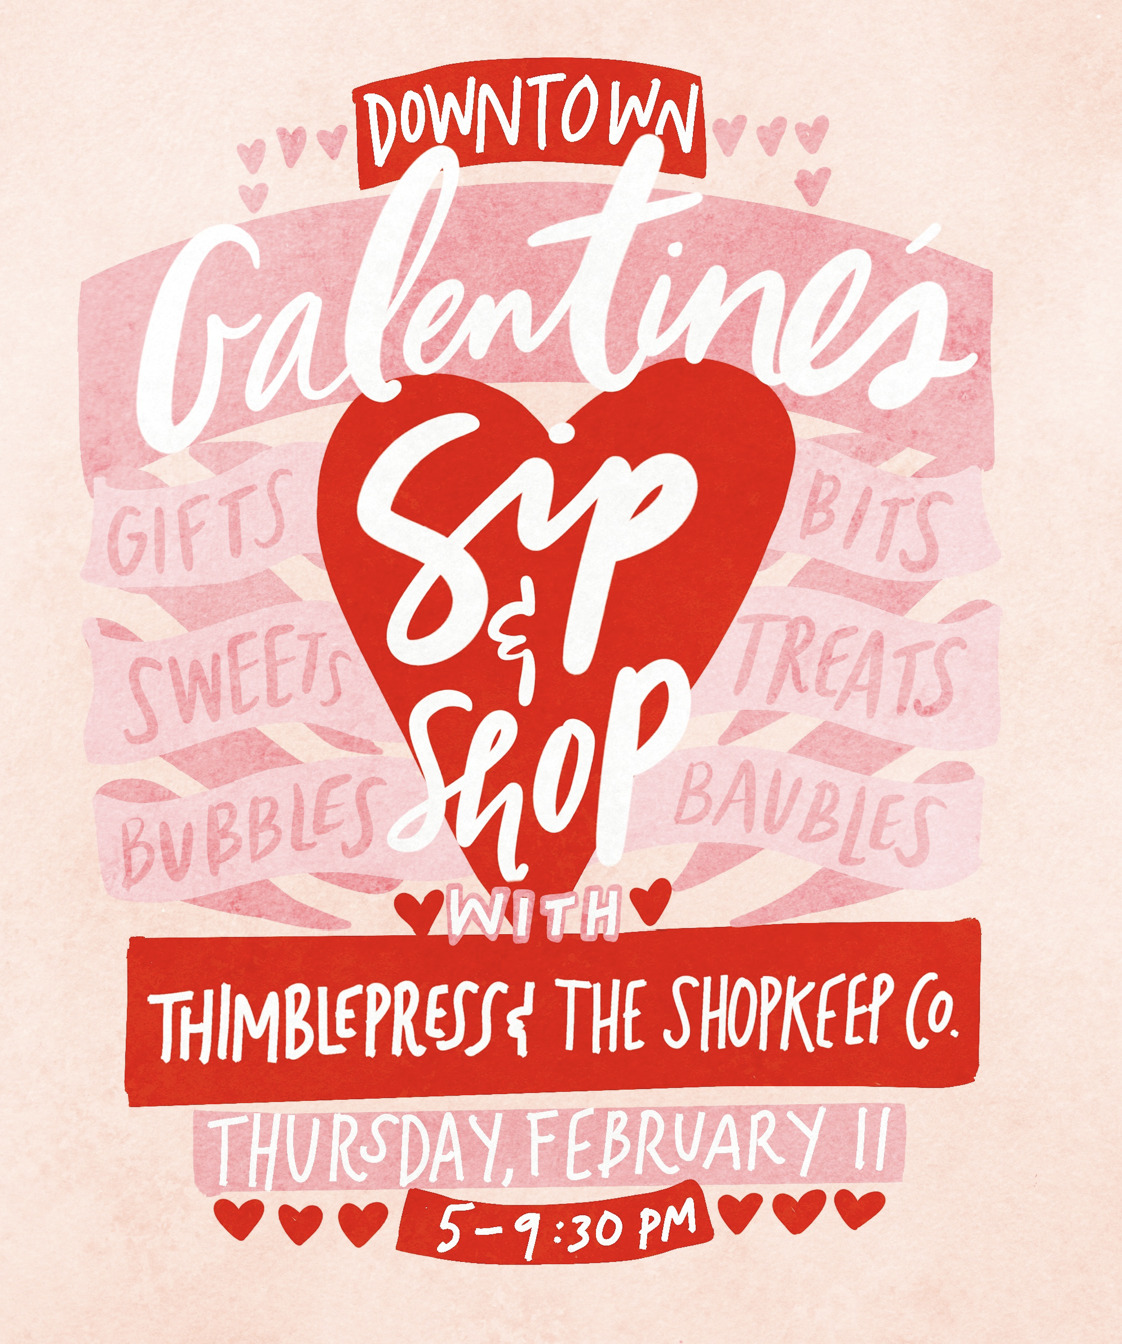 Galentine's Sip & Shop with Thimblepress & The Shopkeep Co.!